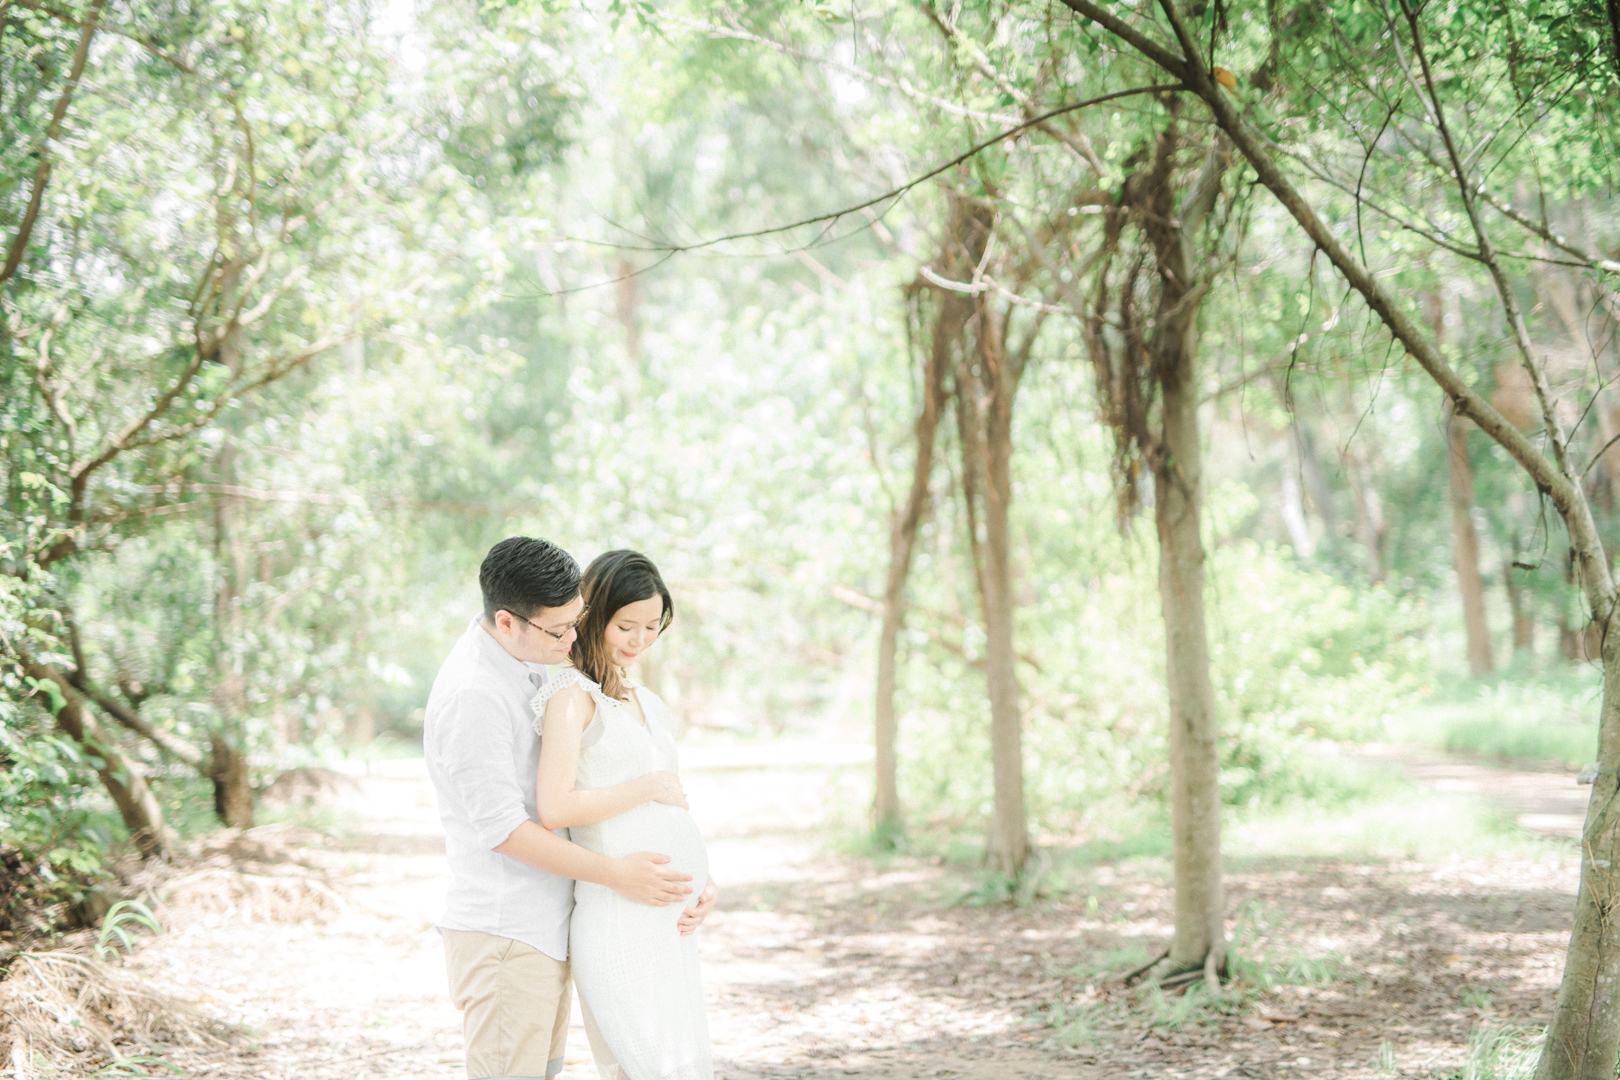 A-Forest-Maternity-Session_00017.jpg